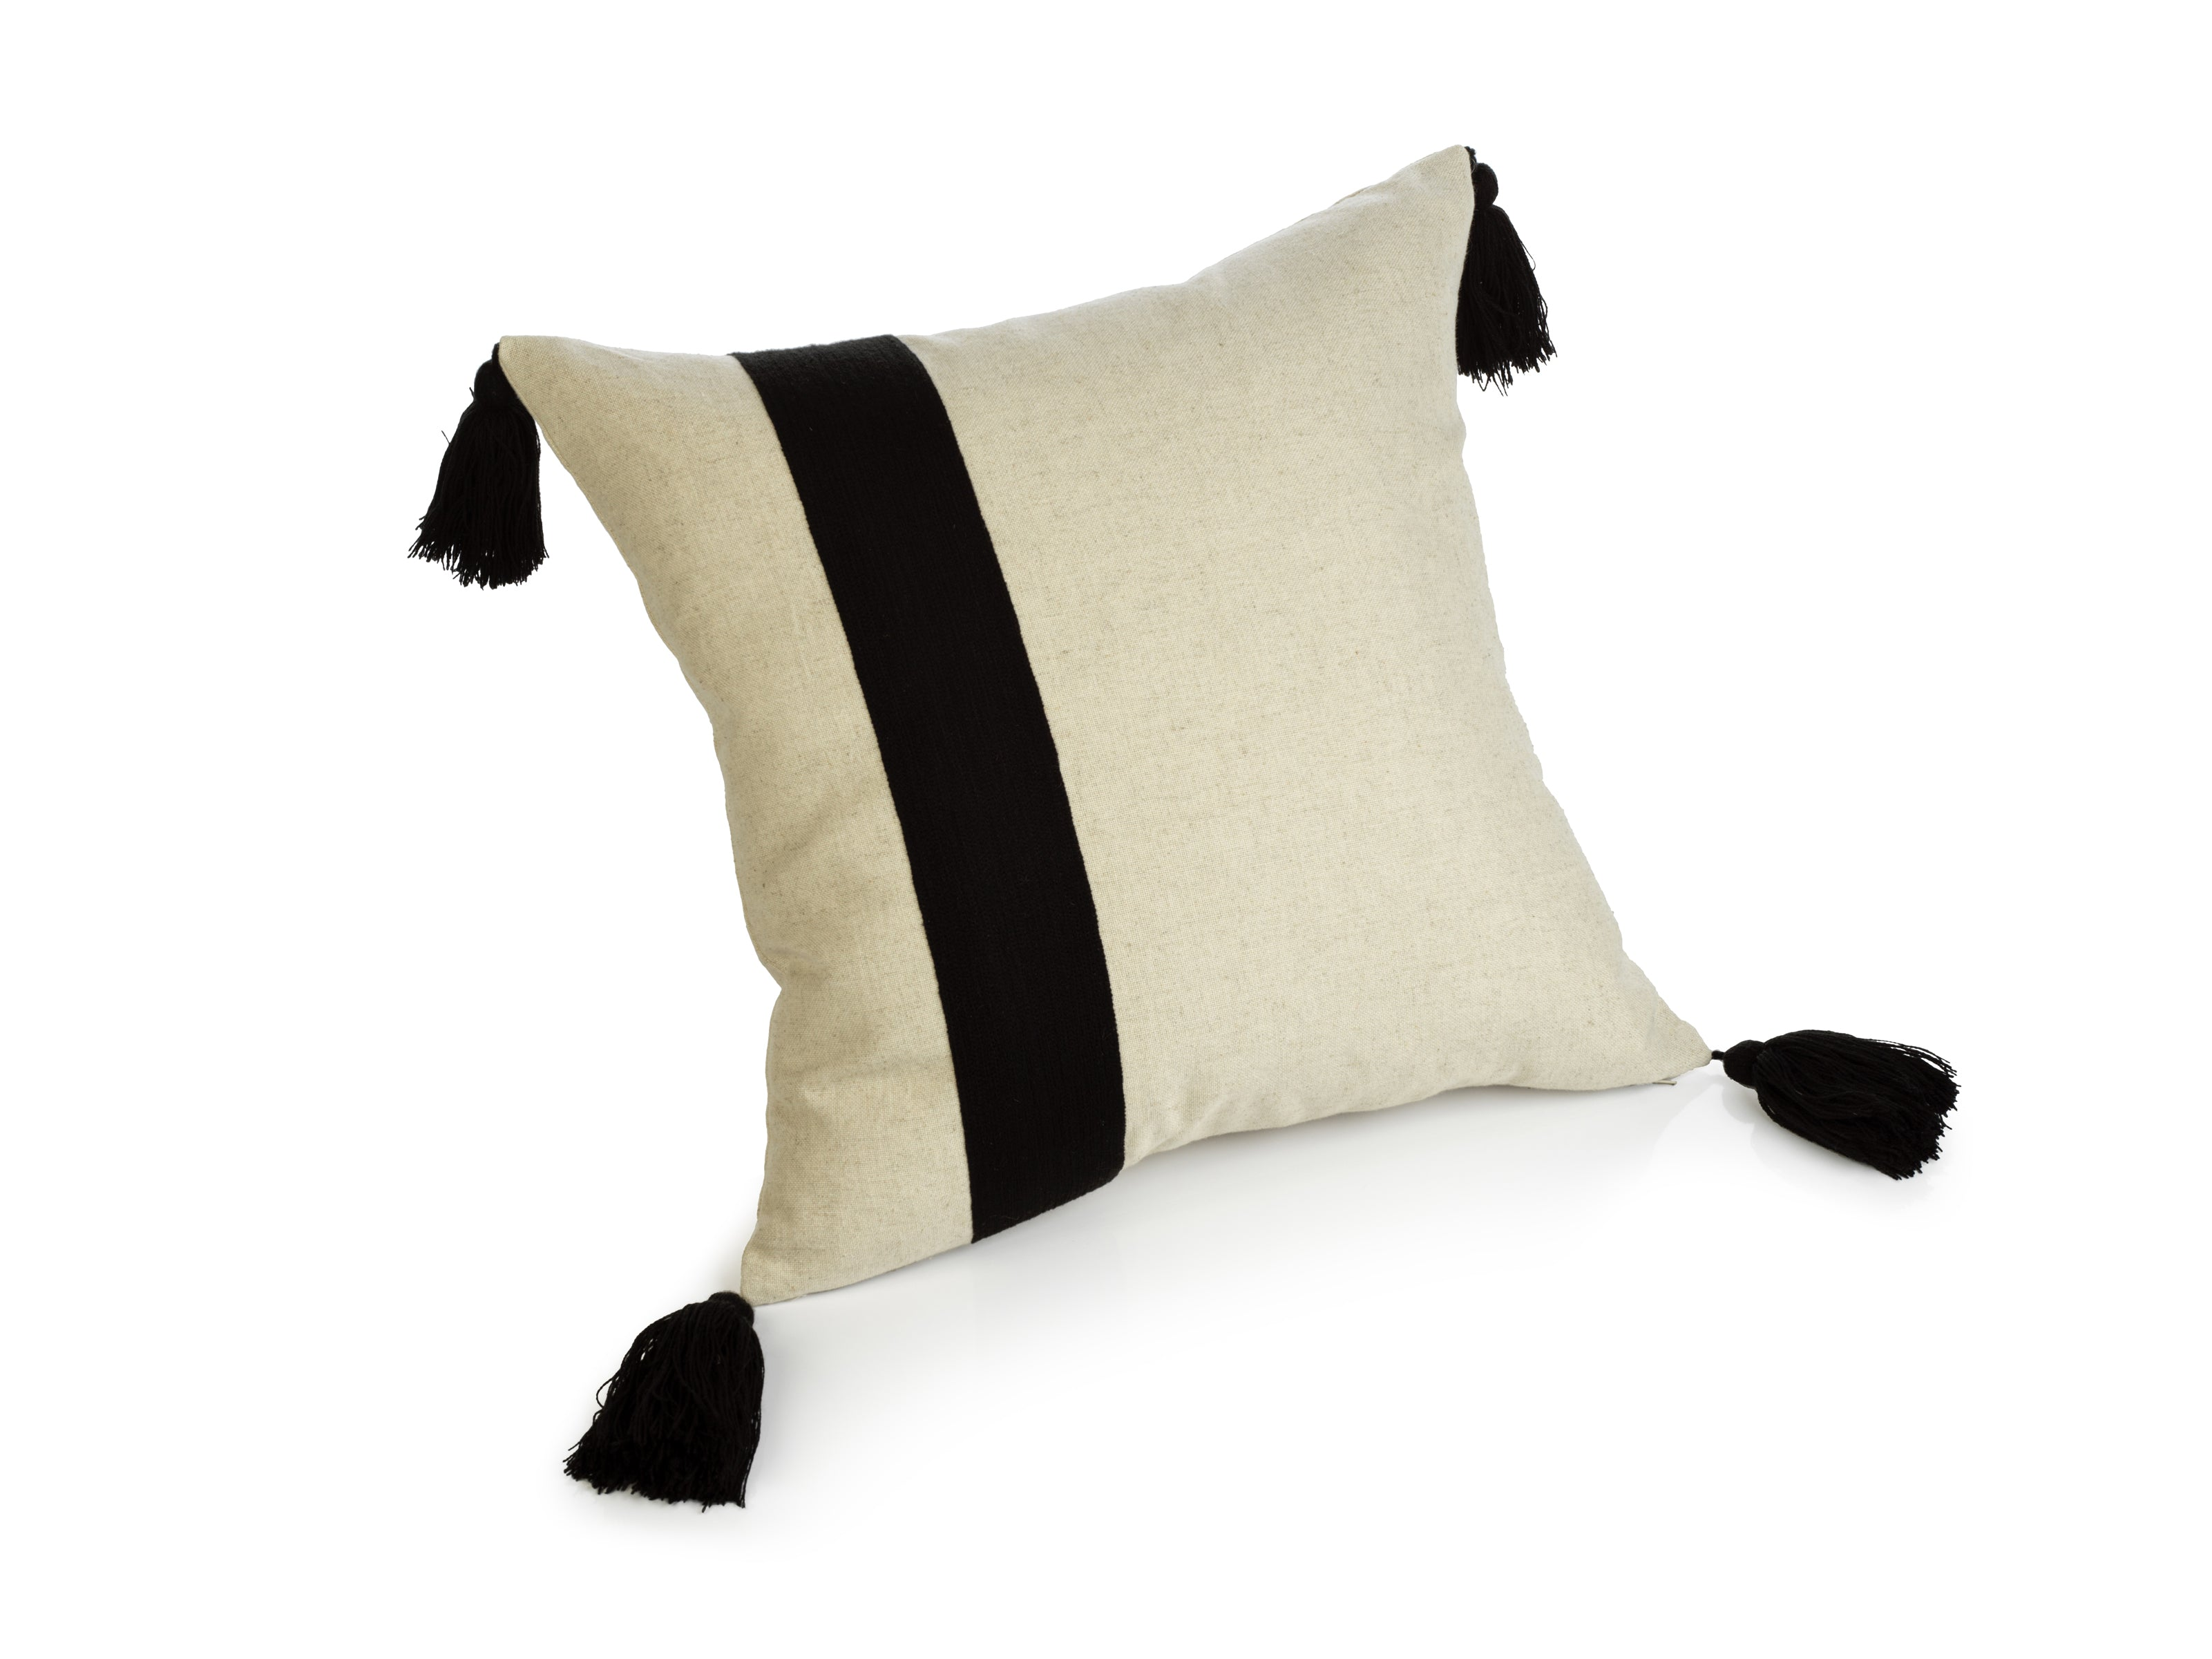 Polignano Embroidered Throw Pillow w/Tassels - Black - CARLYLE AVENUE